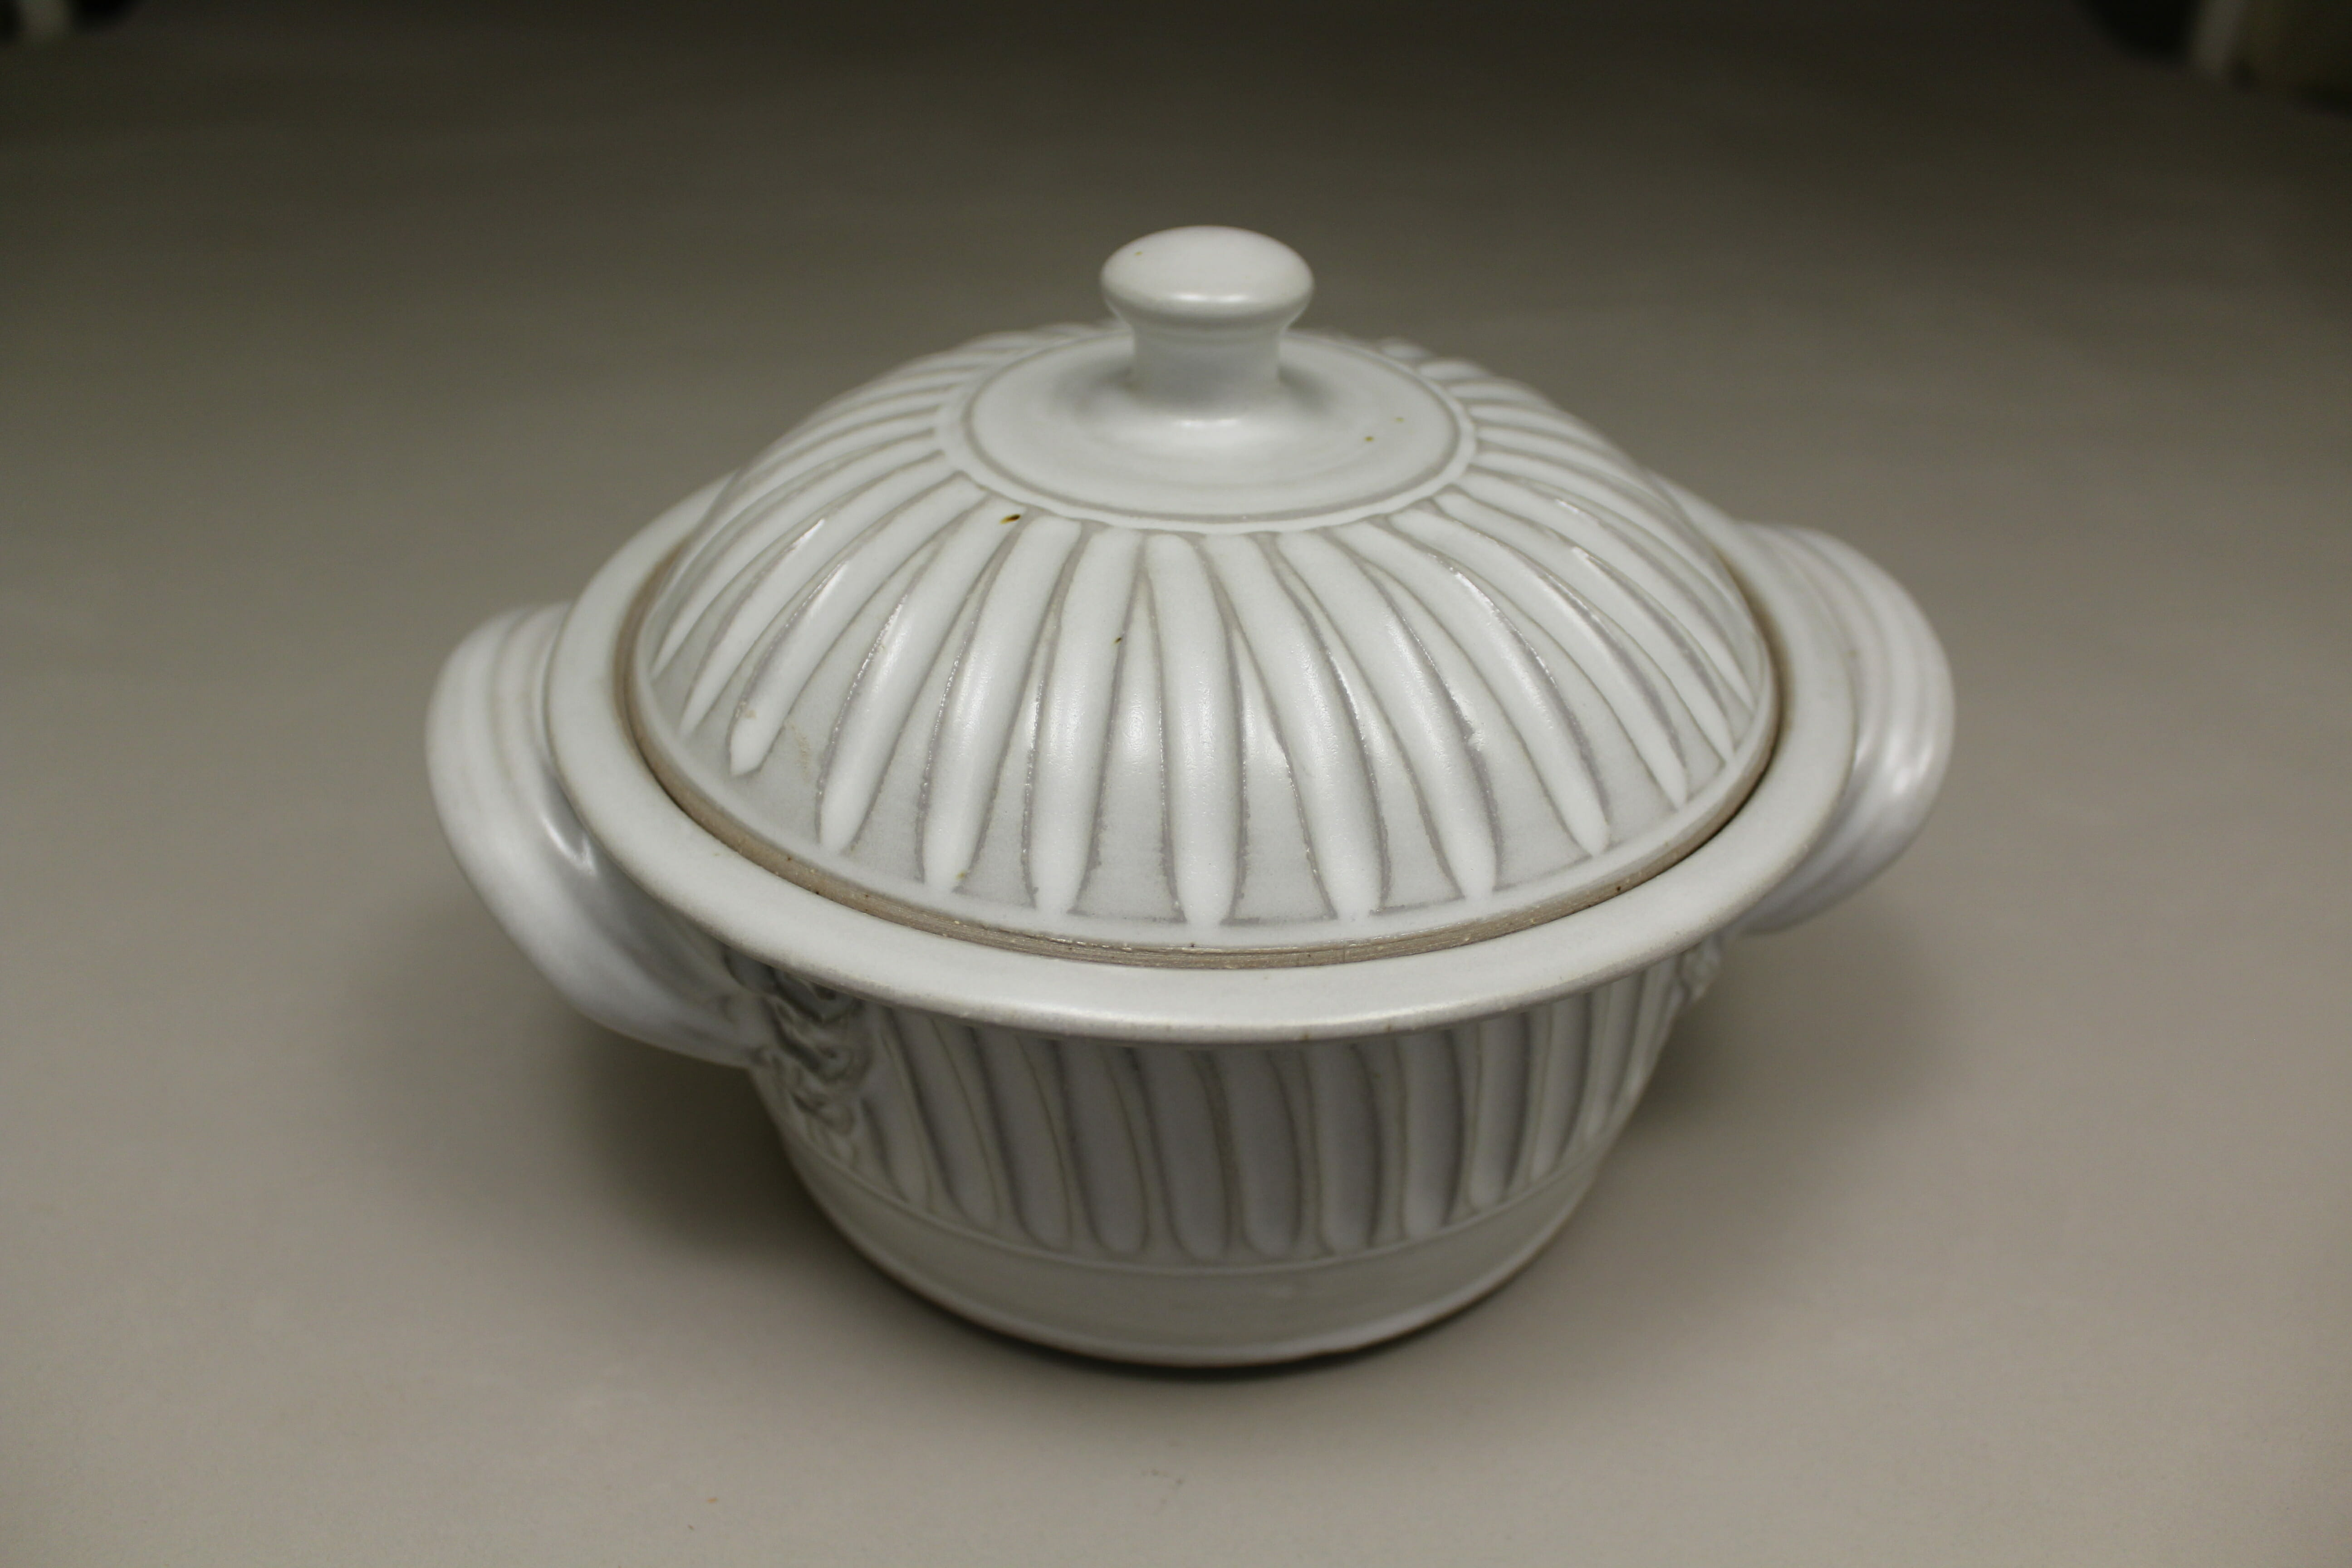 Small Casserole 3 Fluted Design in White Glaze